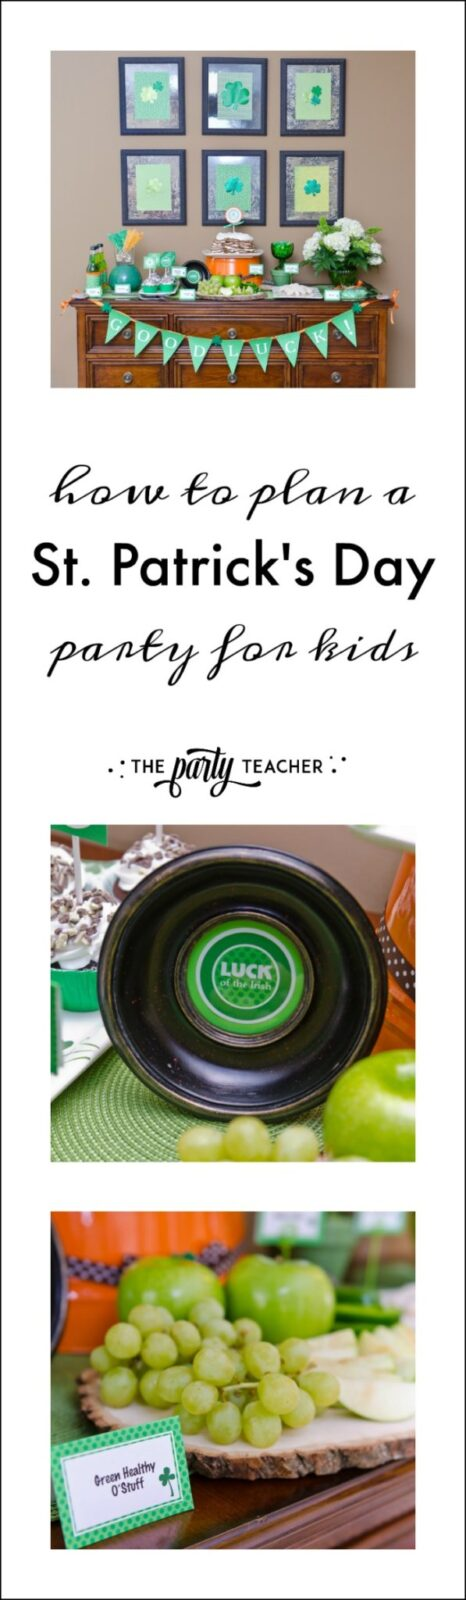 How to plan a St. Patrick's Day Party for kids by The Party Teacher